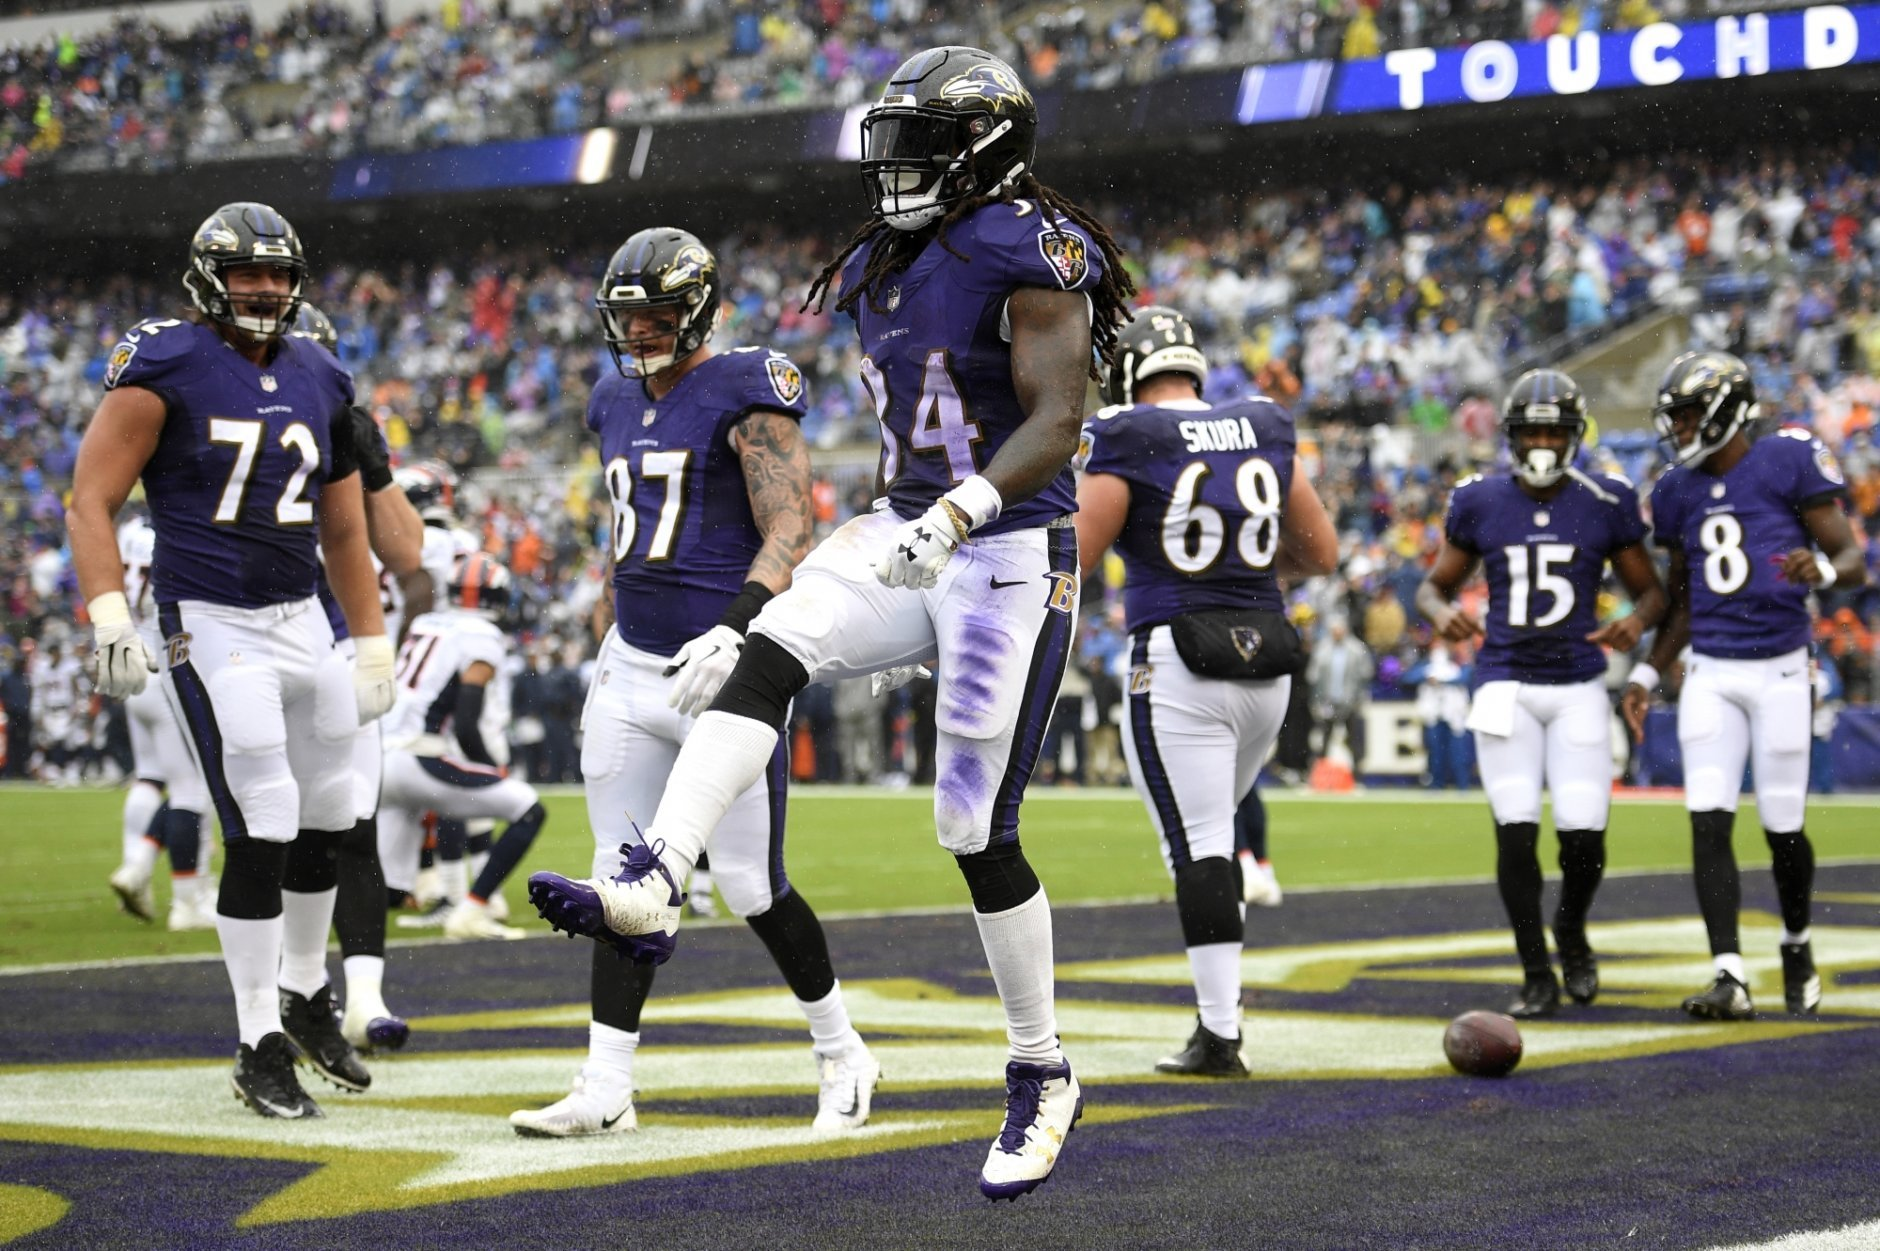 bf936fa2 Flacco shines as Ravens deal Broncos first loss, 27-14 | WTOP